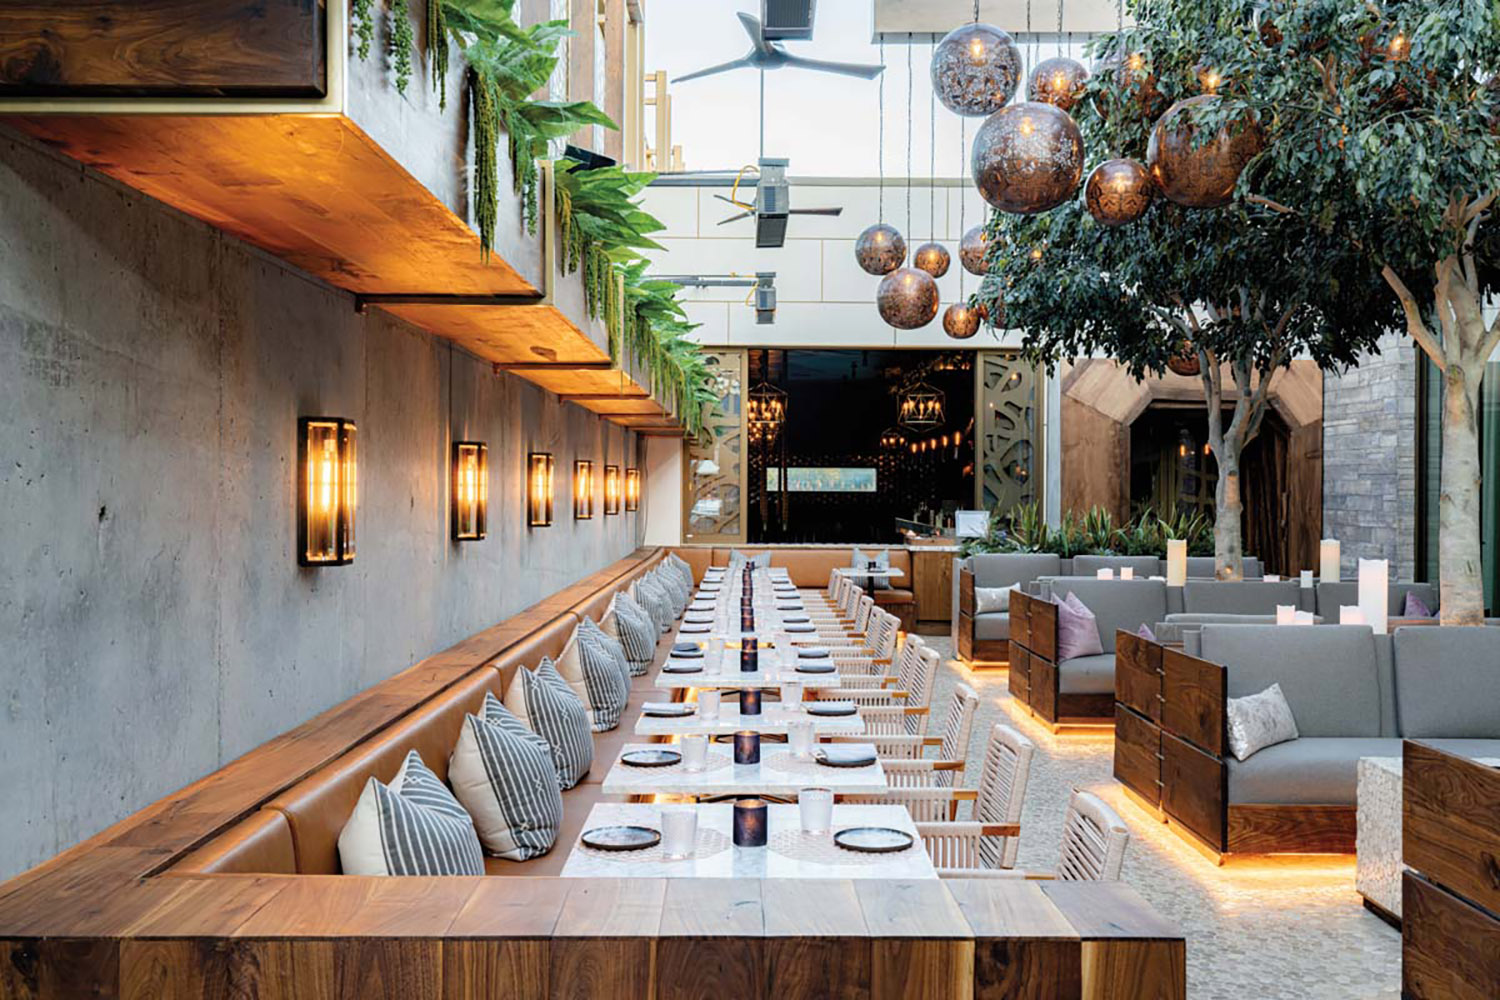 Outdoor seating area at restaurant with wood accents and greenery